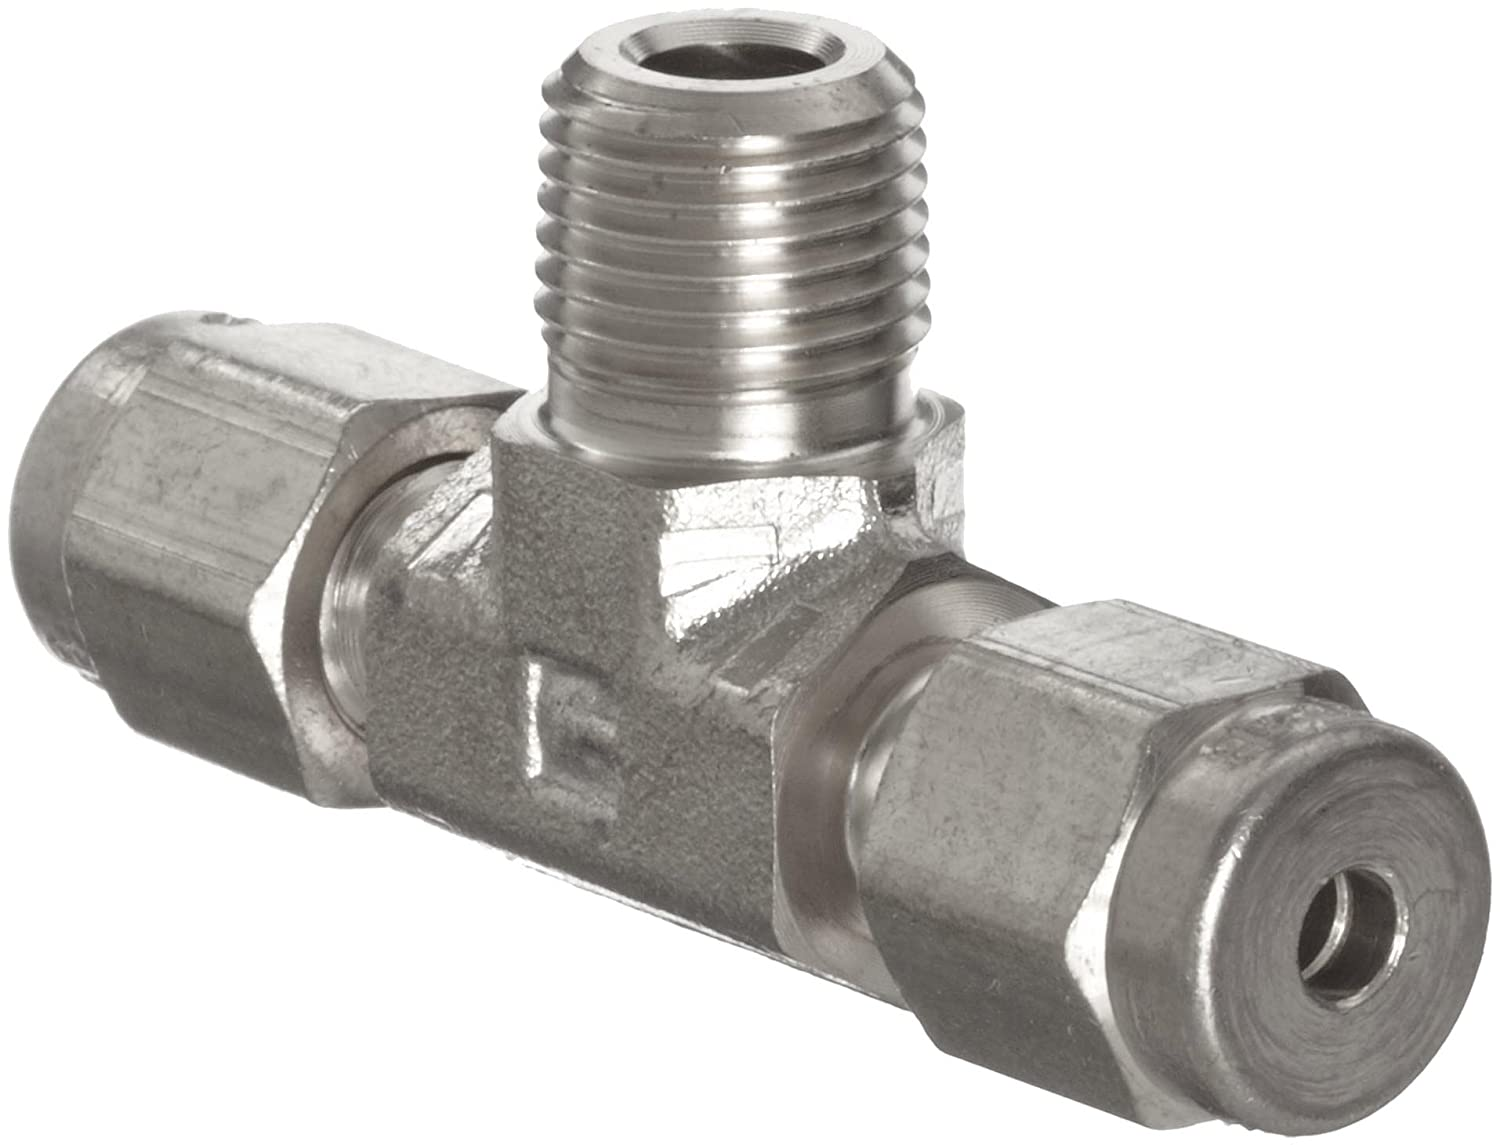 Reducing Union Parker A-Lok 6RU4-316 316 Stainless Steel Compression Tube Fitting 3//8 Tube OD x 1//4 Tube OD 3//8 Tube OD x 1//4 Tube OD Parker Hannifin